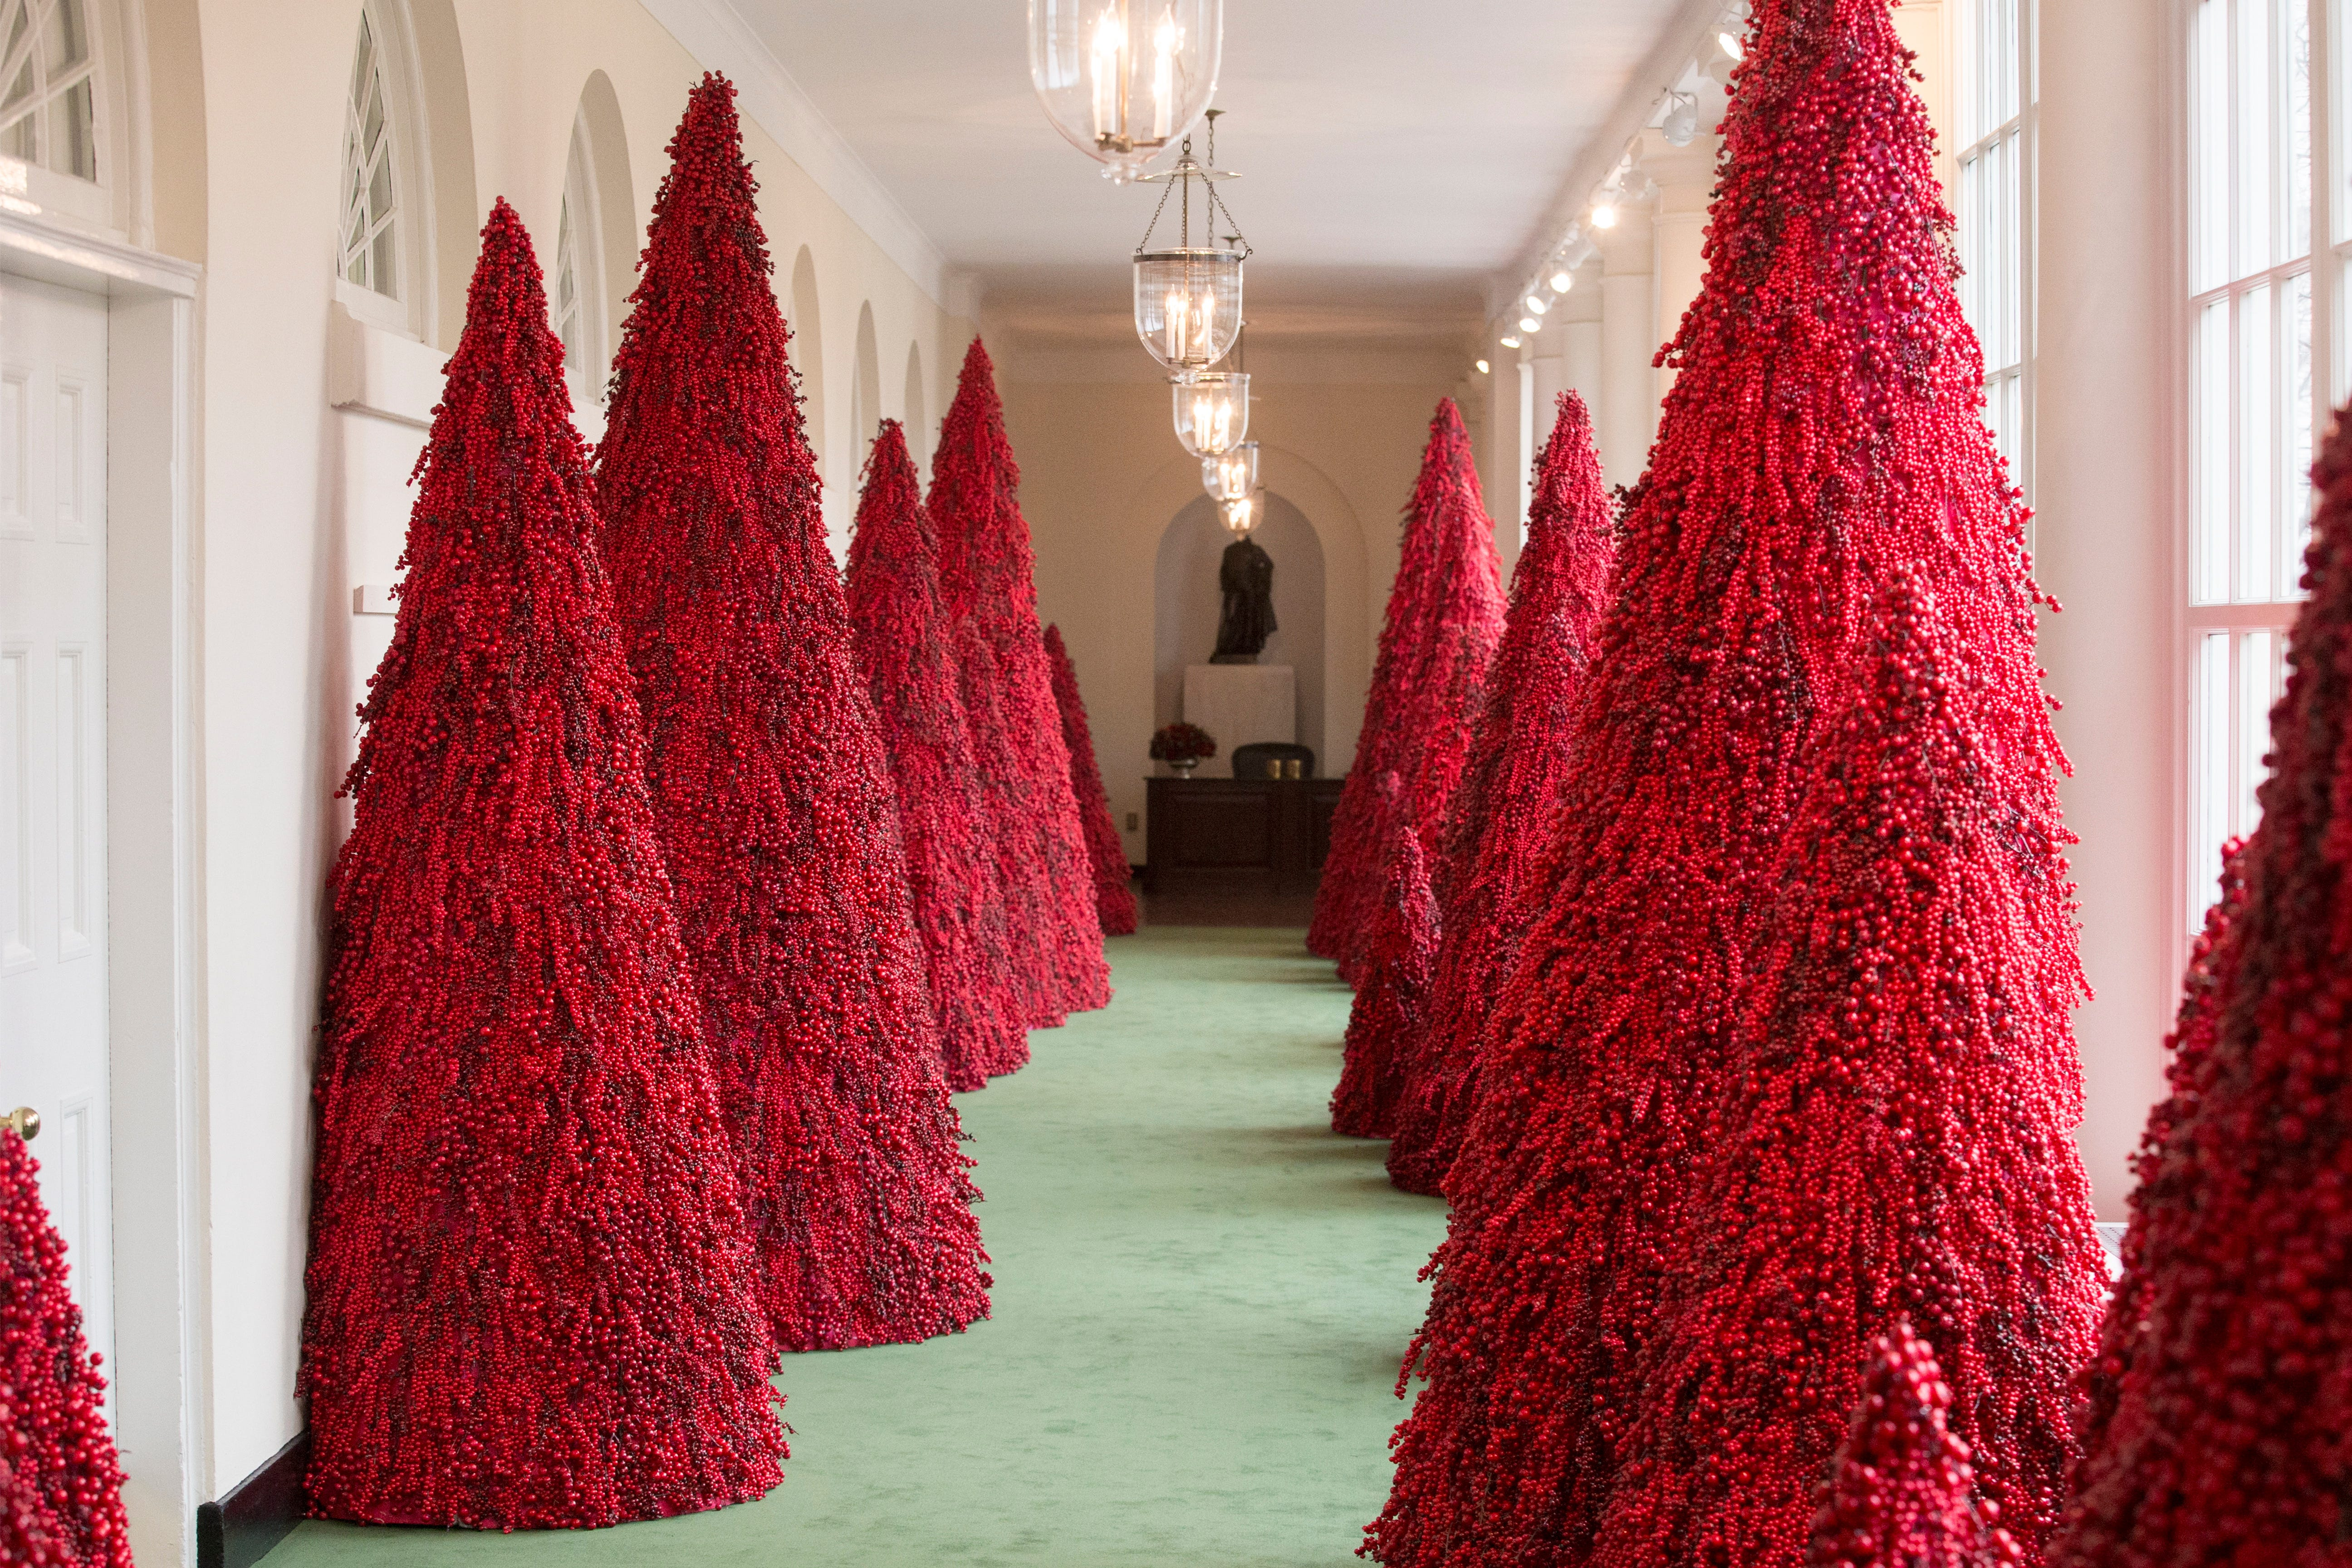 Melania Trump's controversial red trees a hit at White House Christmas parties